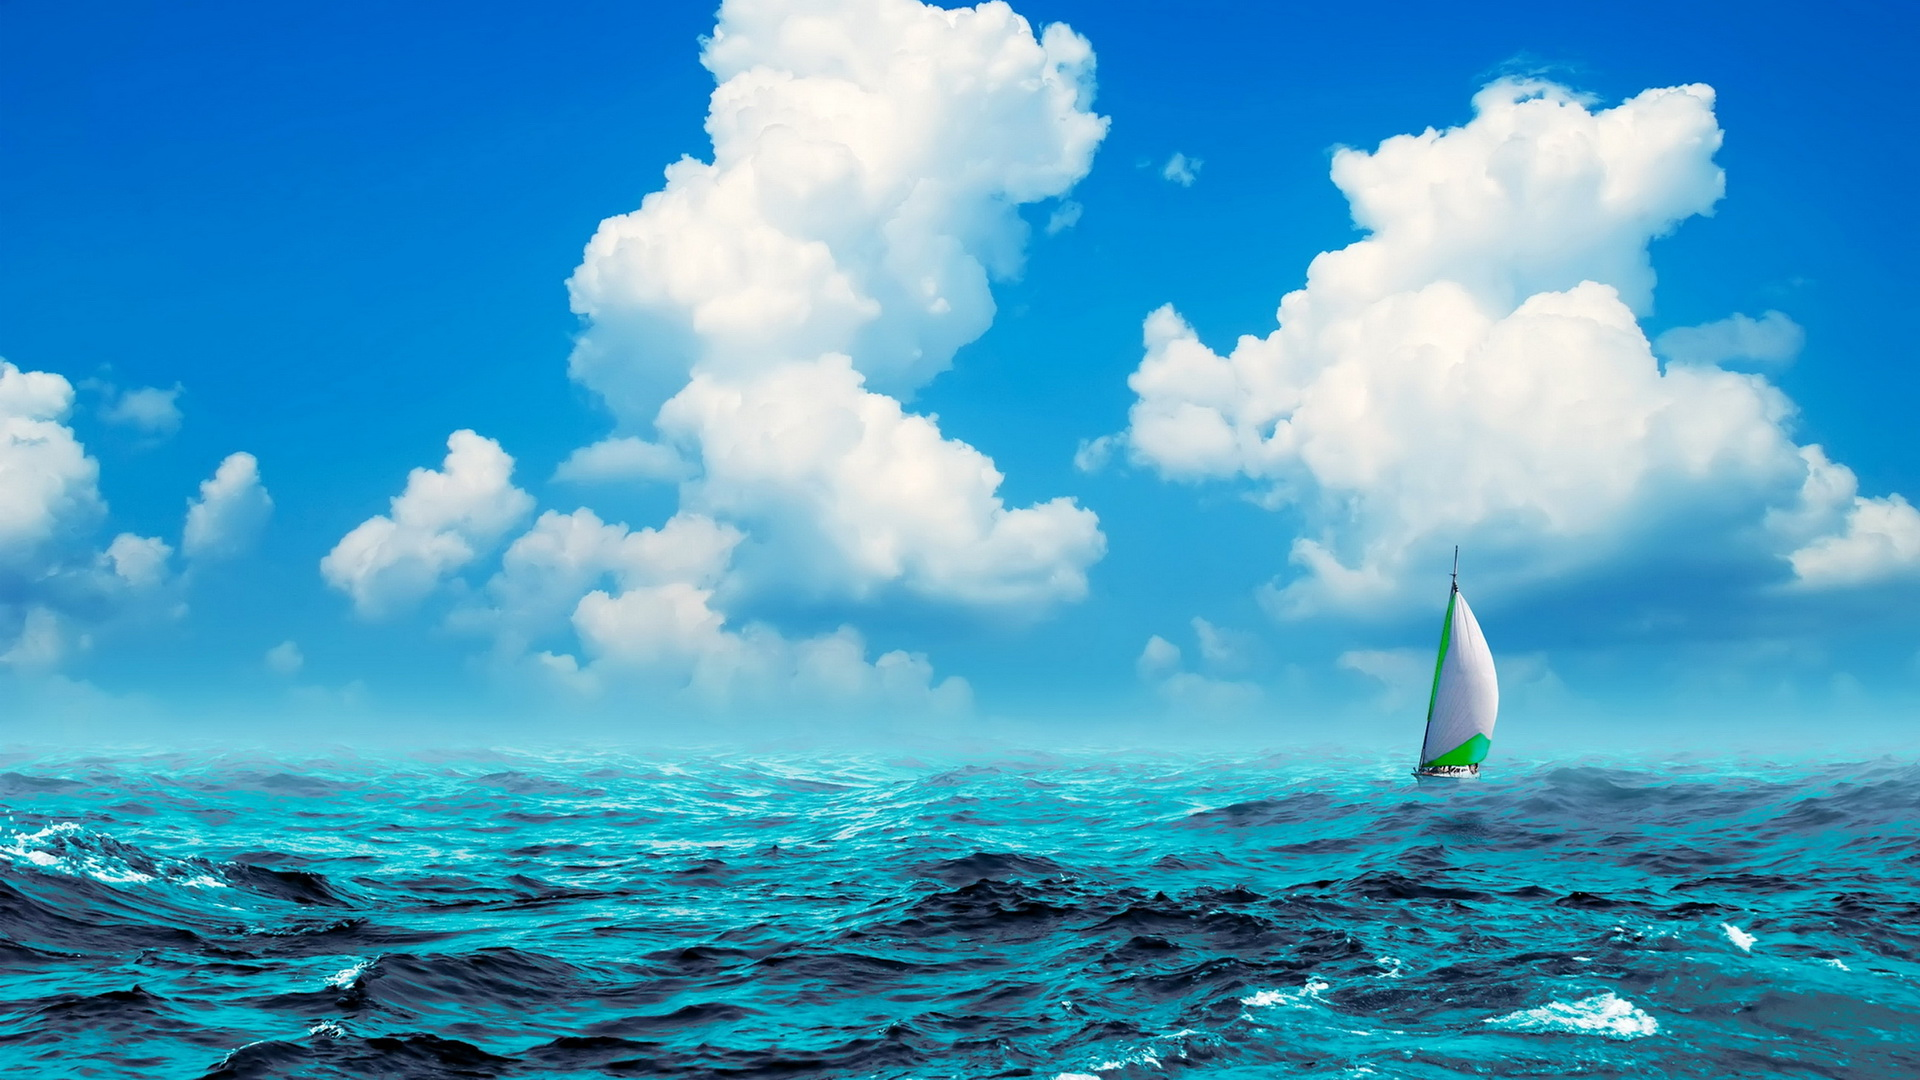 hungry for sailboat wallpaper - photo #28